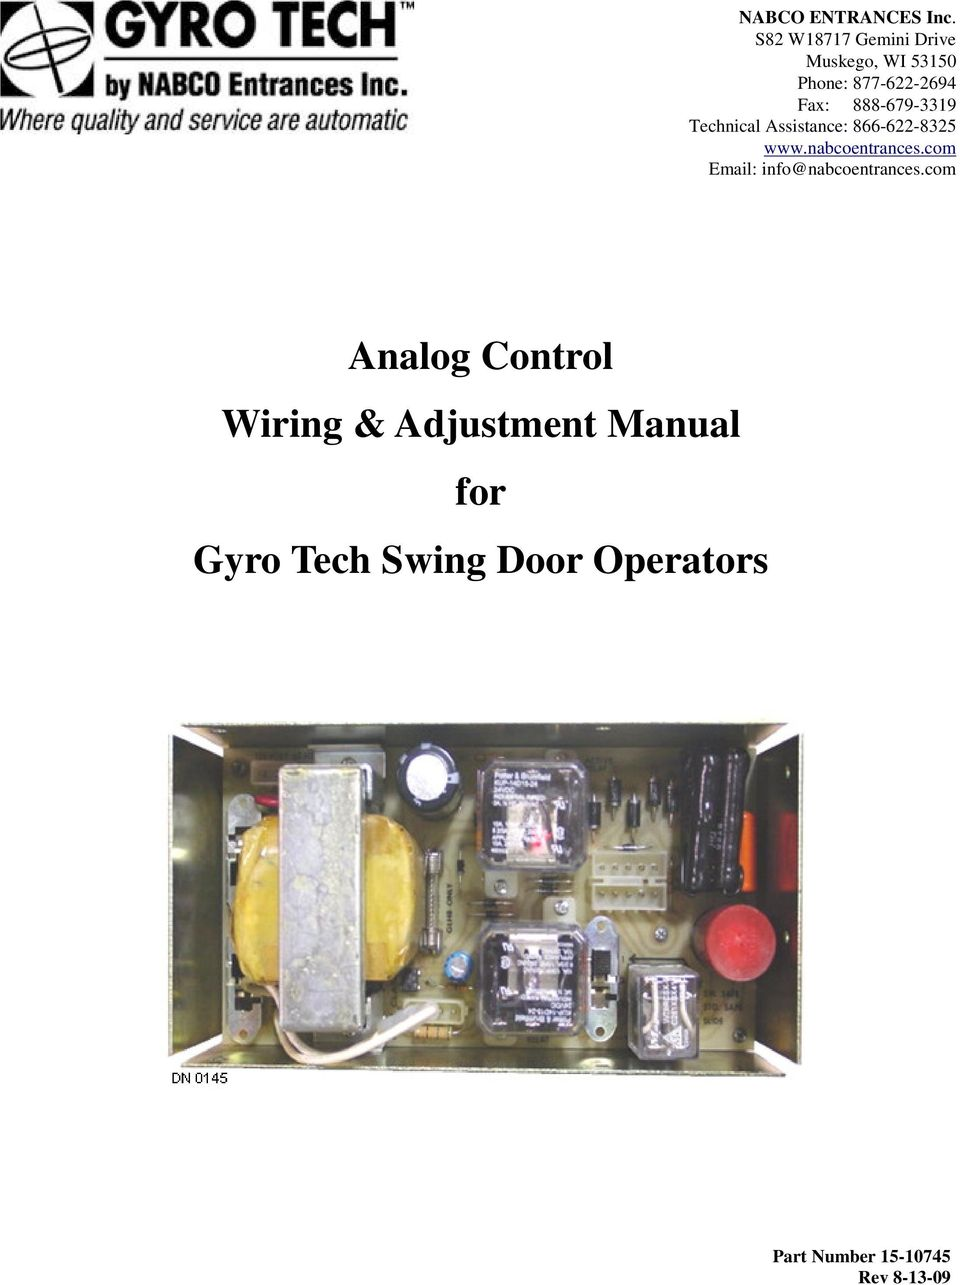 Analog control wiring adjustment manual for gyro tech